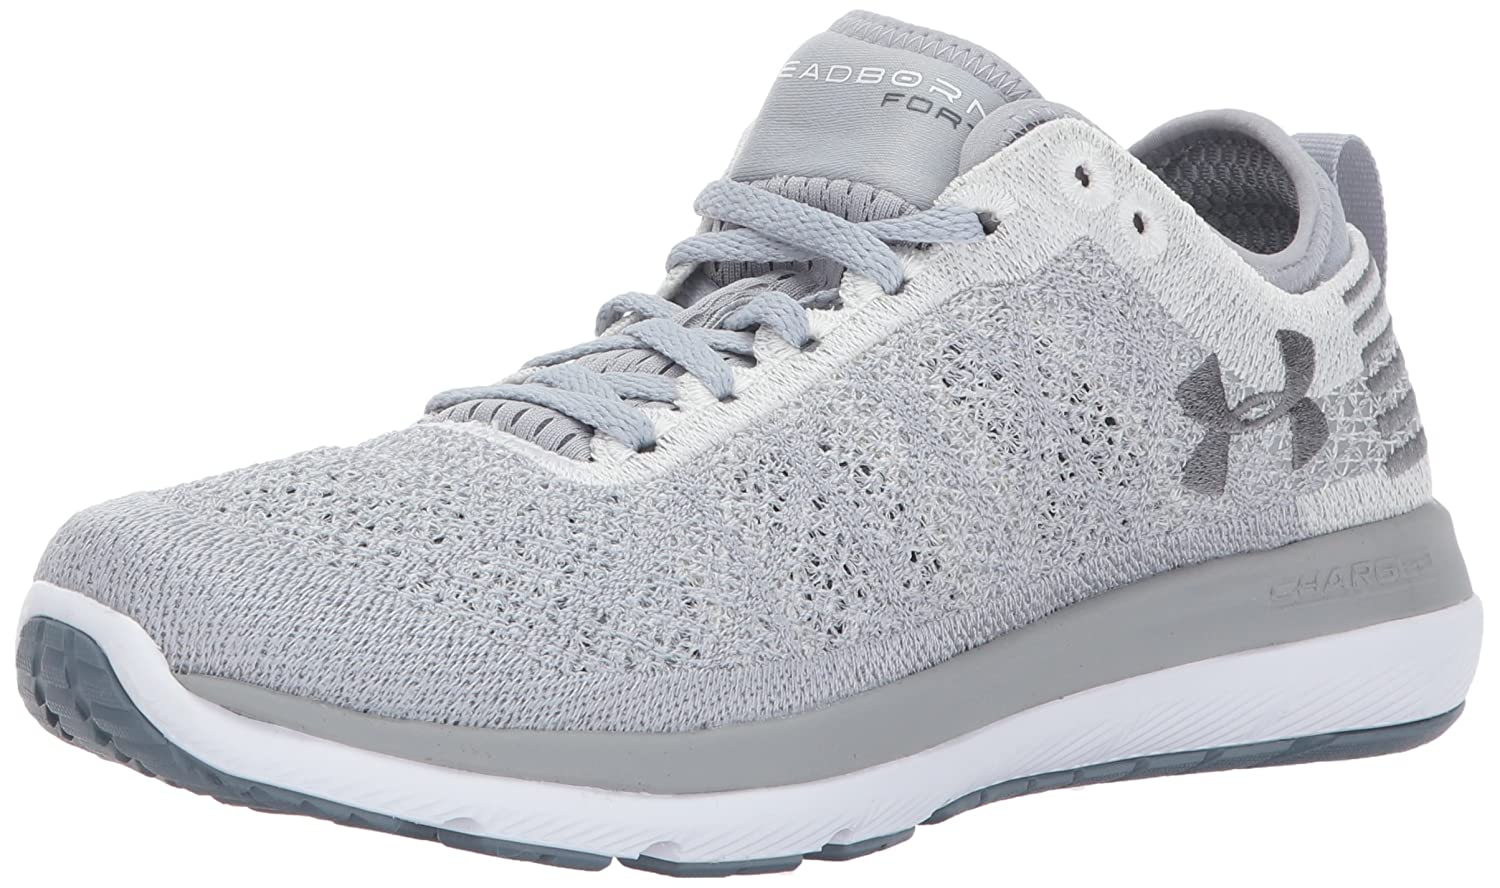 Under Armour Women's Threadborne Fortis Running Shoe B01MSYE8MX 10 M US|Overcast Gray (103)/White